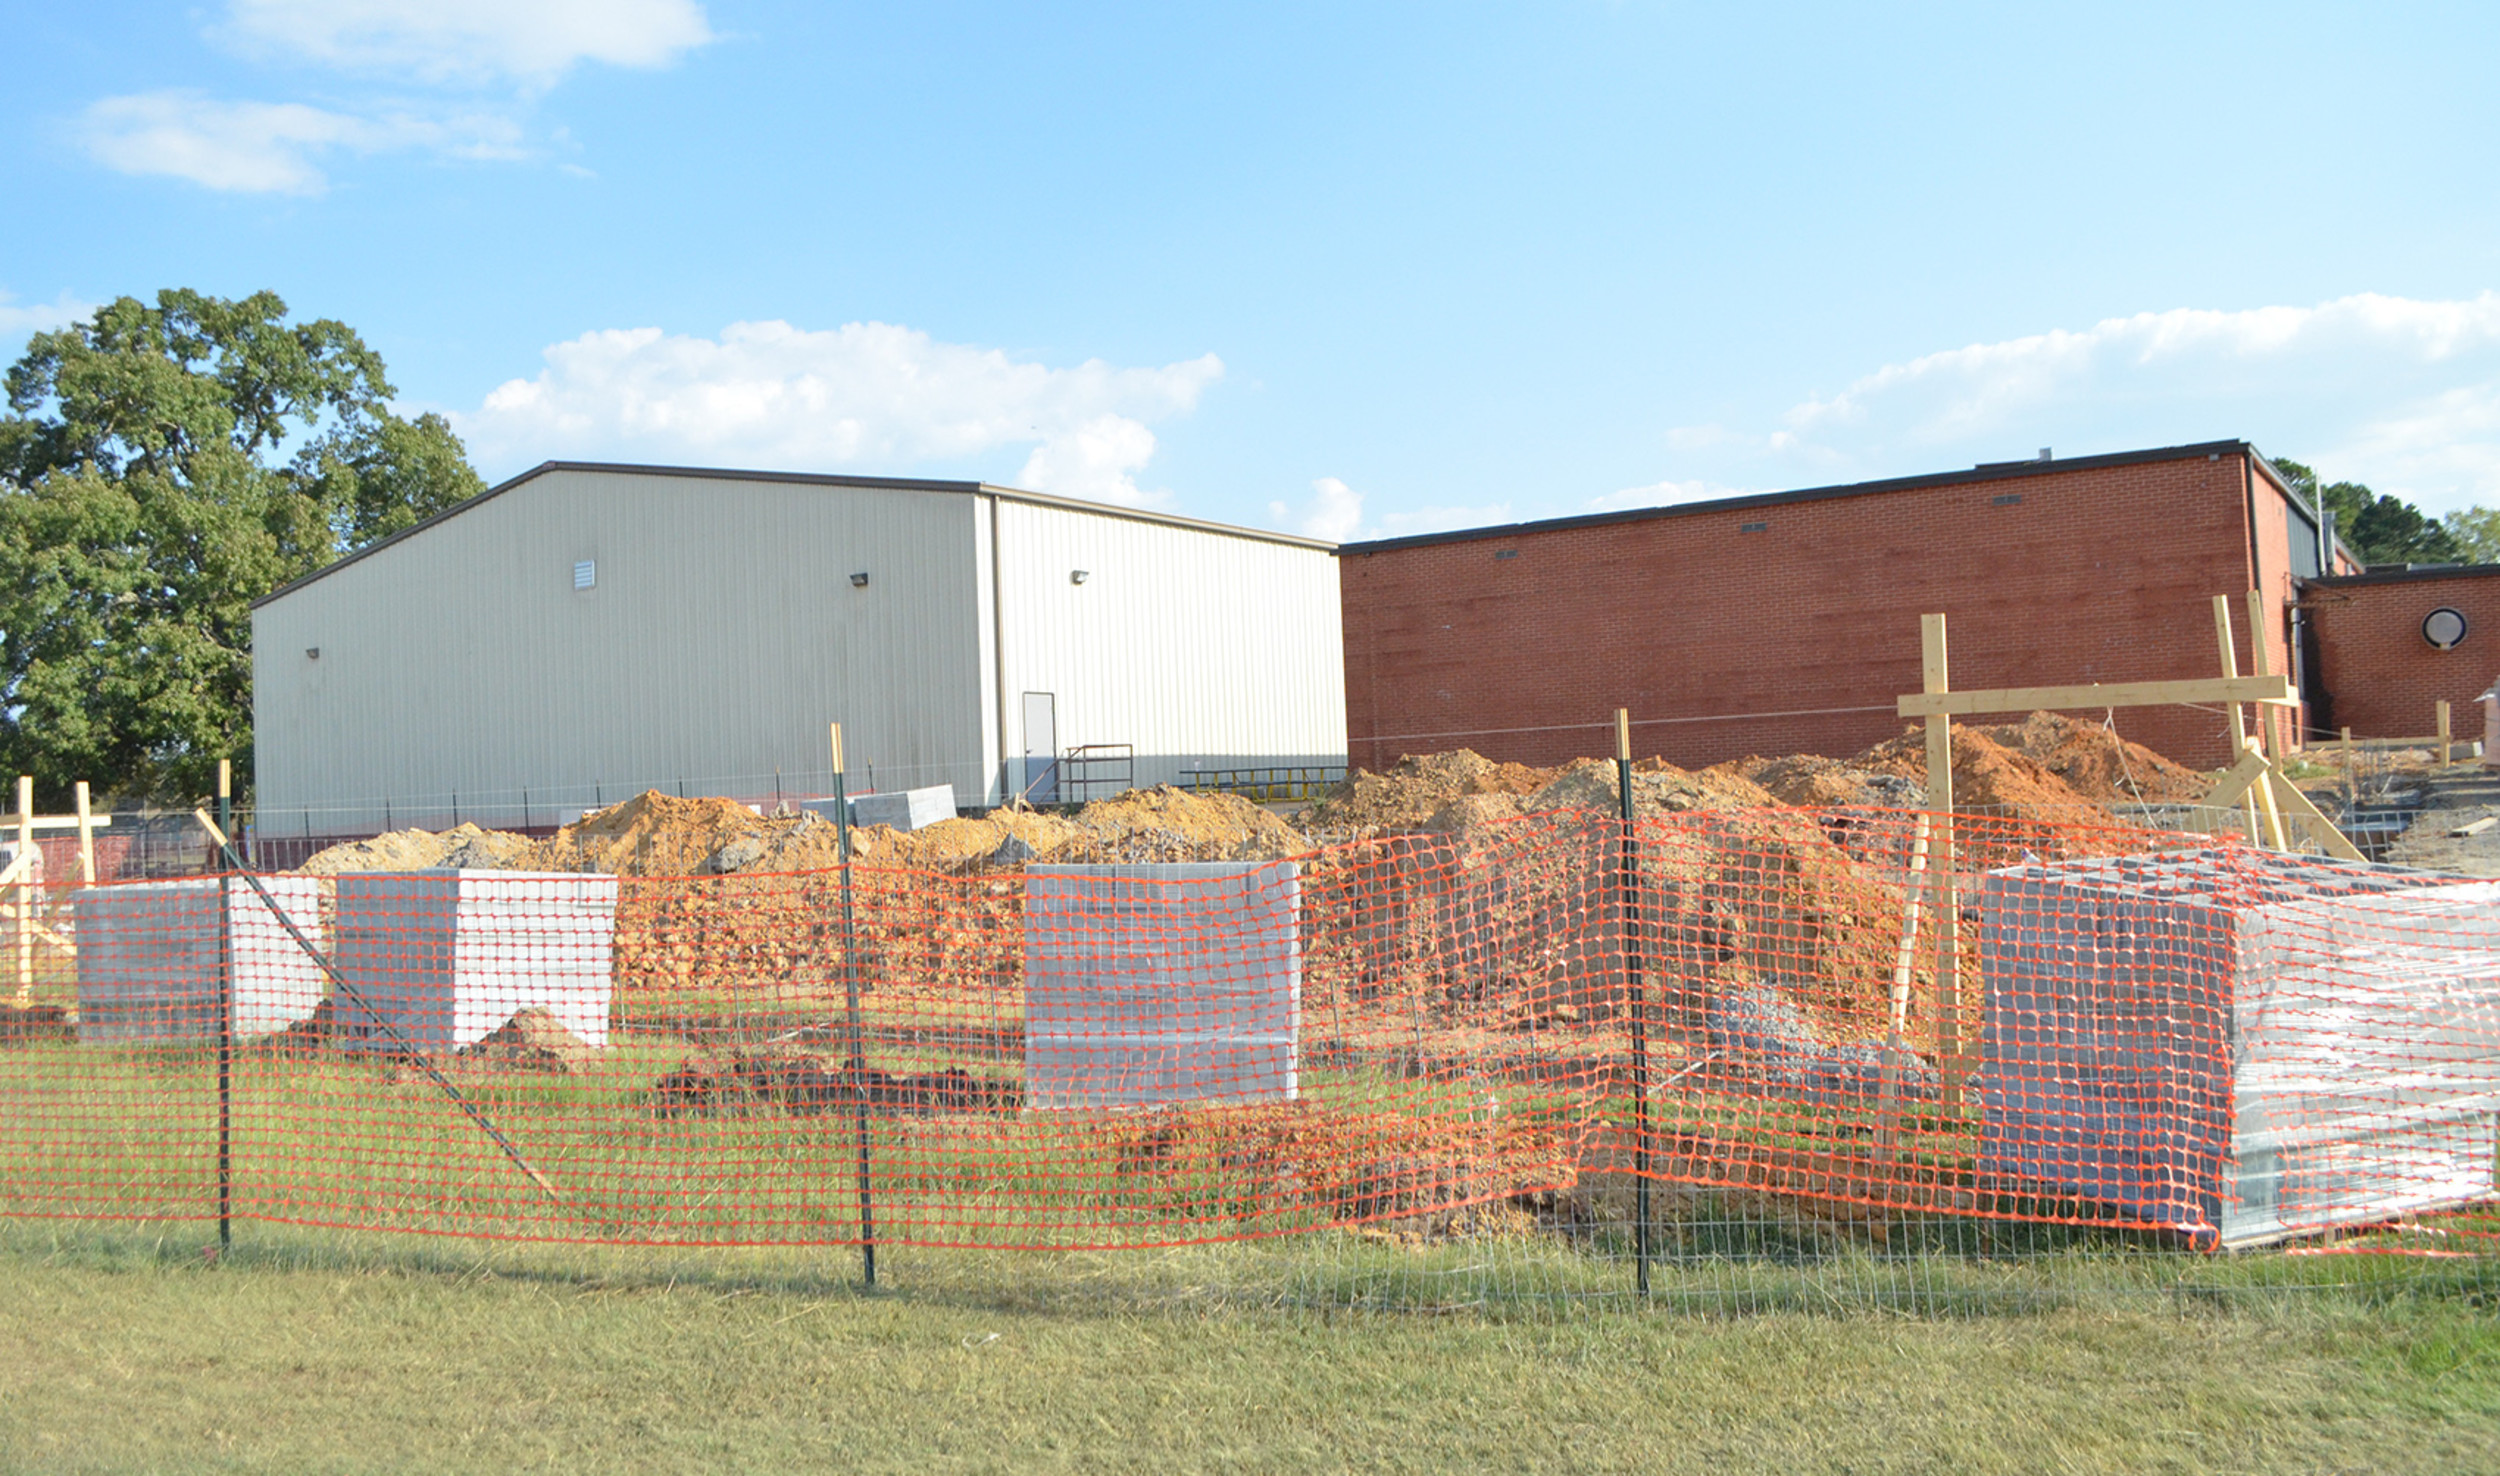 Construction projects are beginning at Oakman High School and Curry Elementary/Middle schools. Oakman is set to get a new lunchroom in the coming months, while Curry students will see an extension of their current lunchroom and additional classrooms.  Daily Mountain Eagle - Nicole Smith